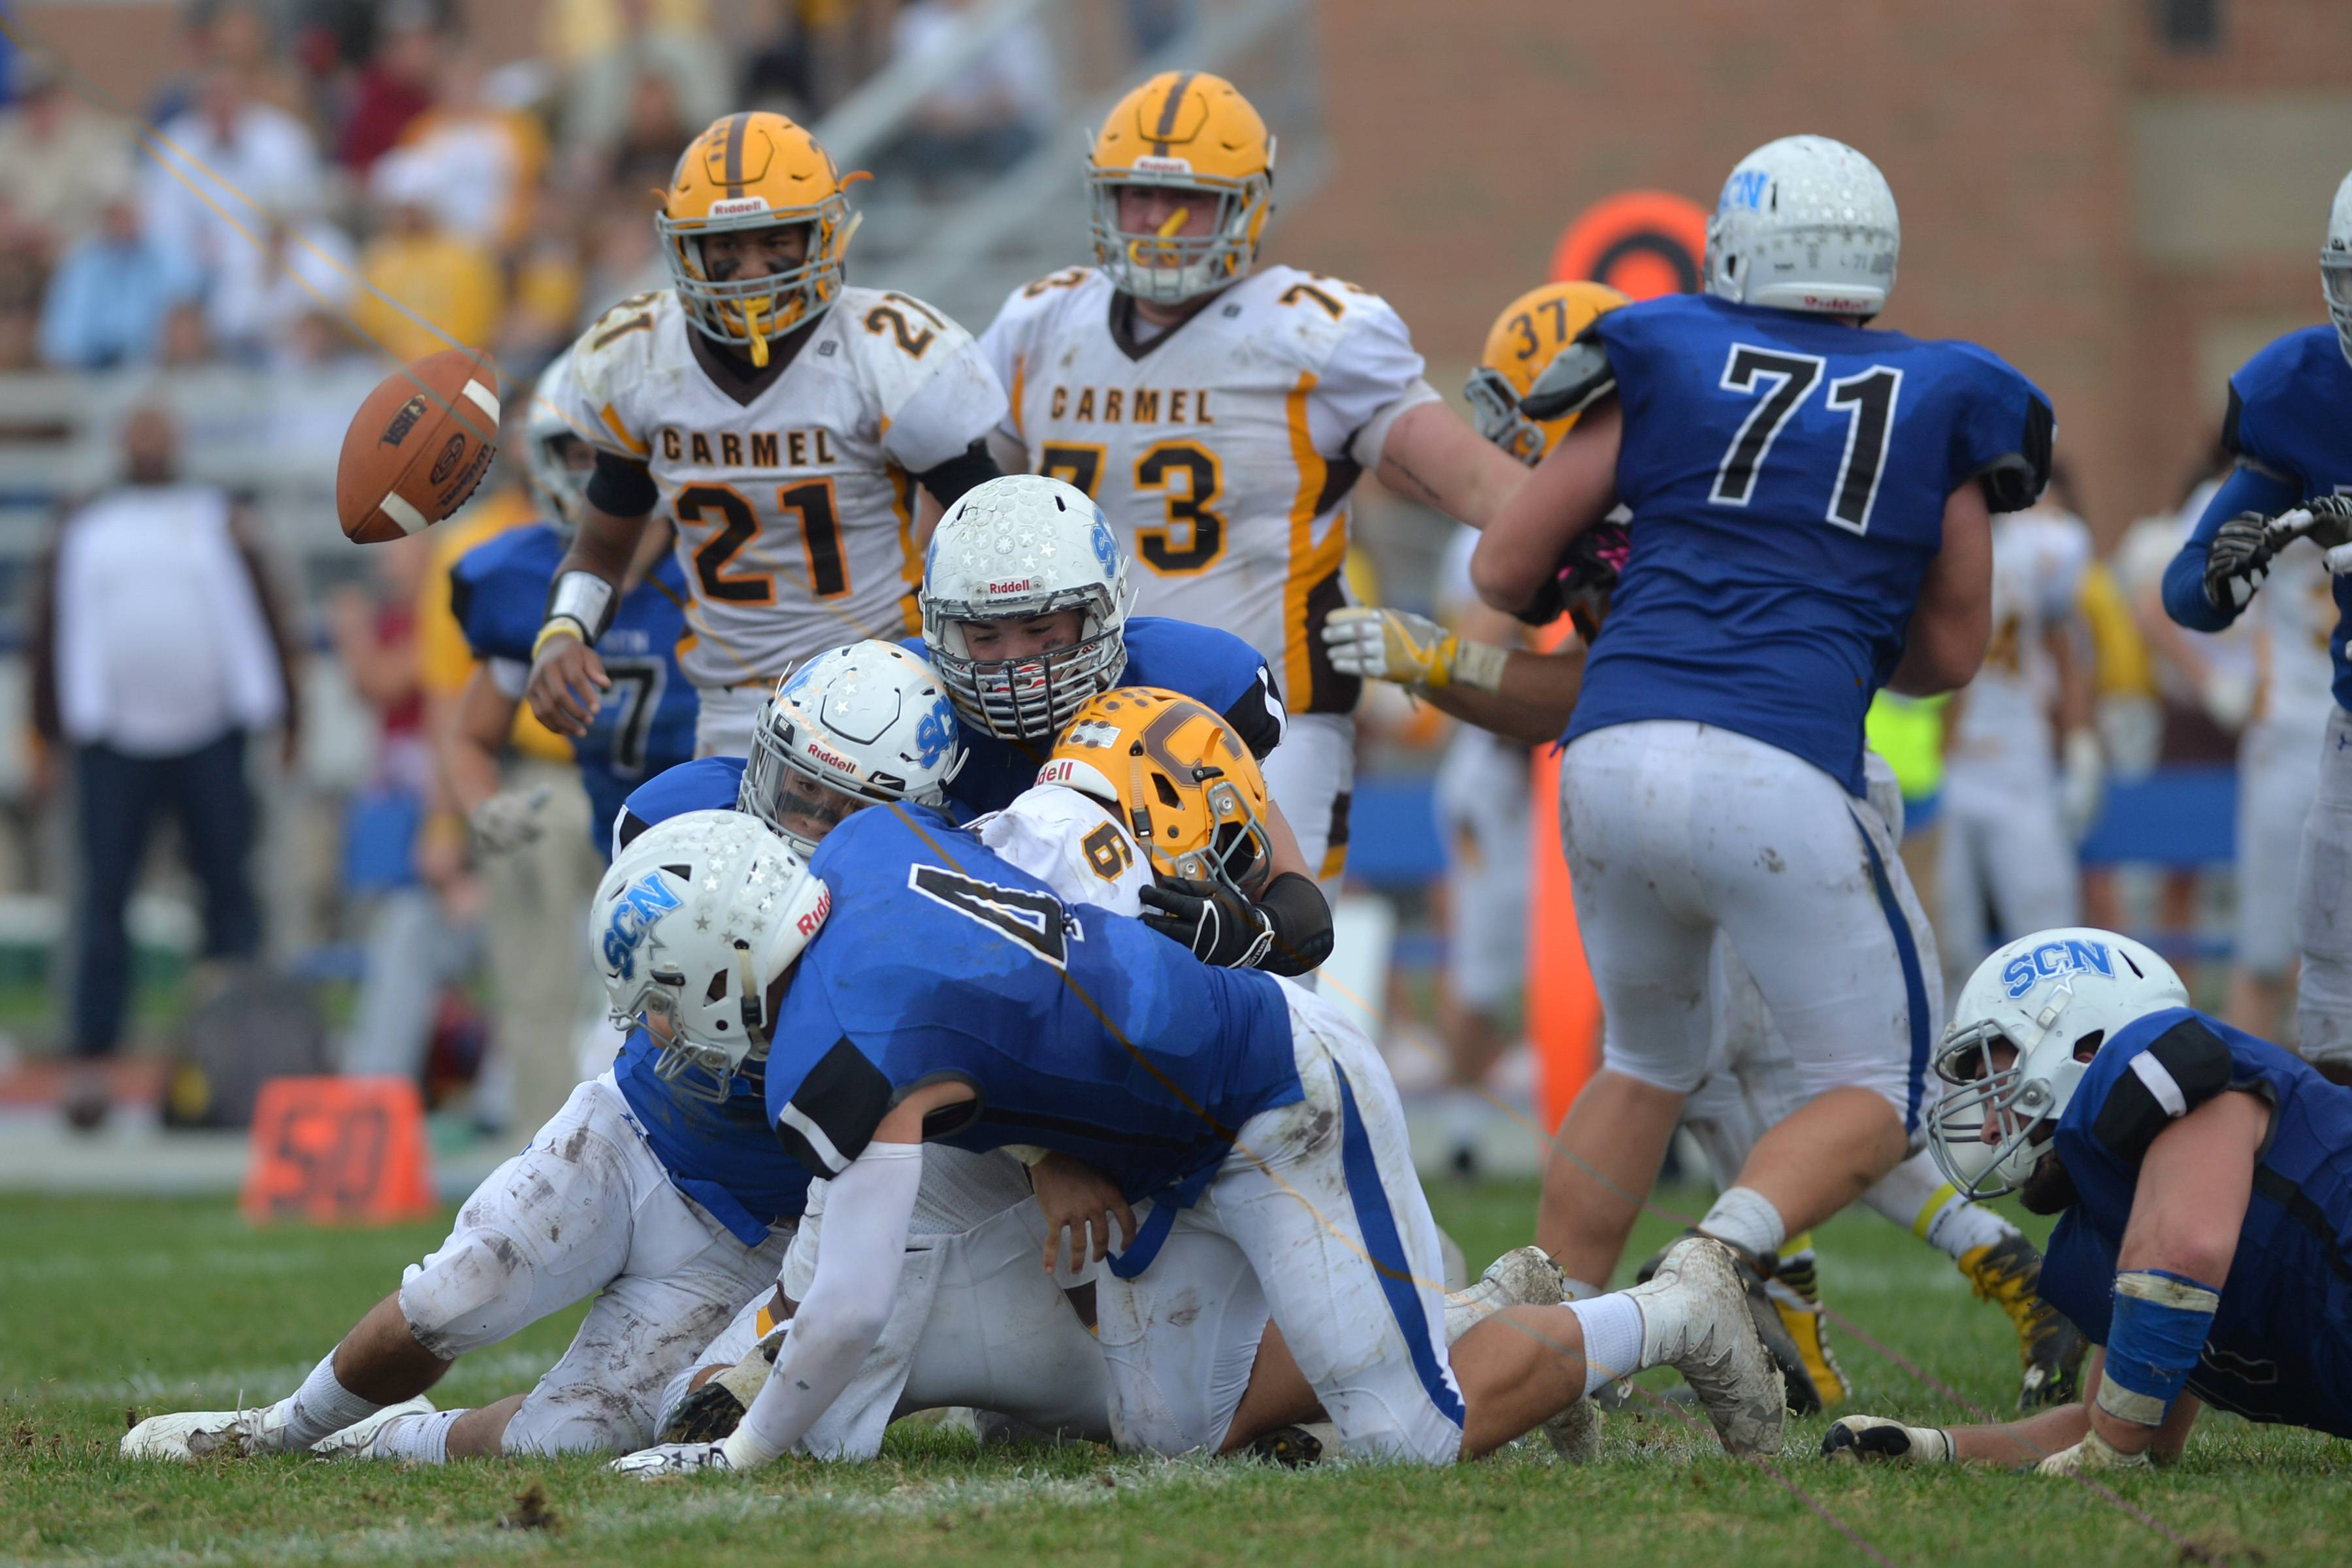 St. Charles North defenders force a Carmel fumble which was returned for a touchdown in the third quarter of the North Stars' 31-24 double overtime win over Carmel Saturday in St. Charles.